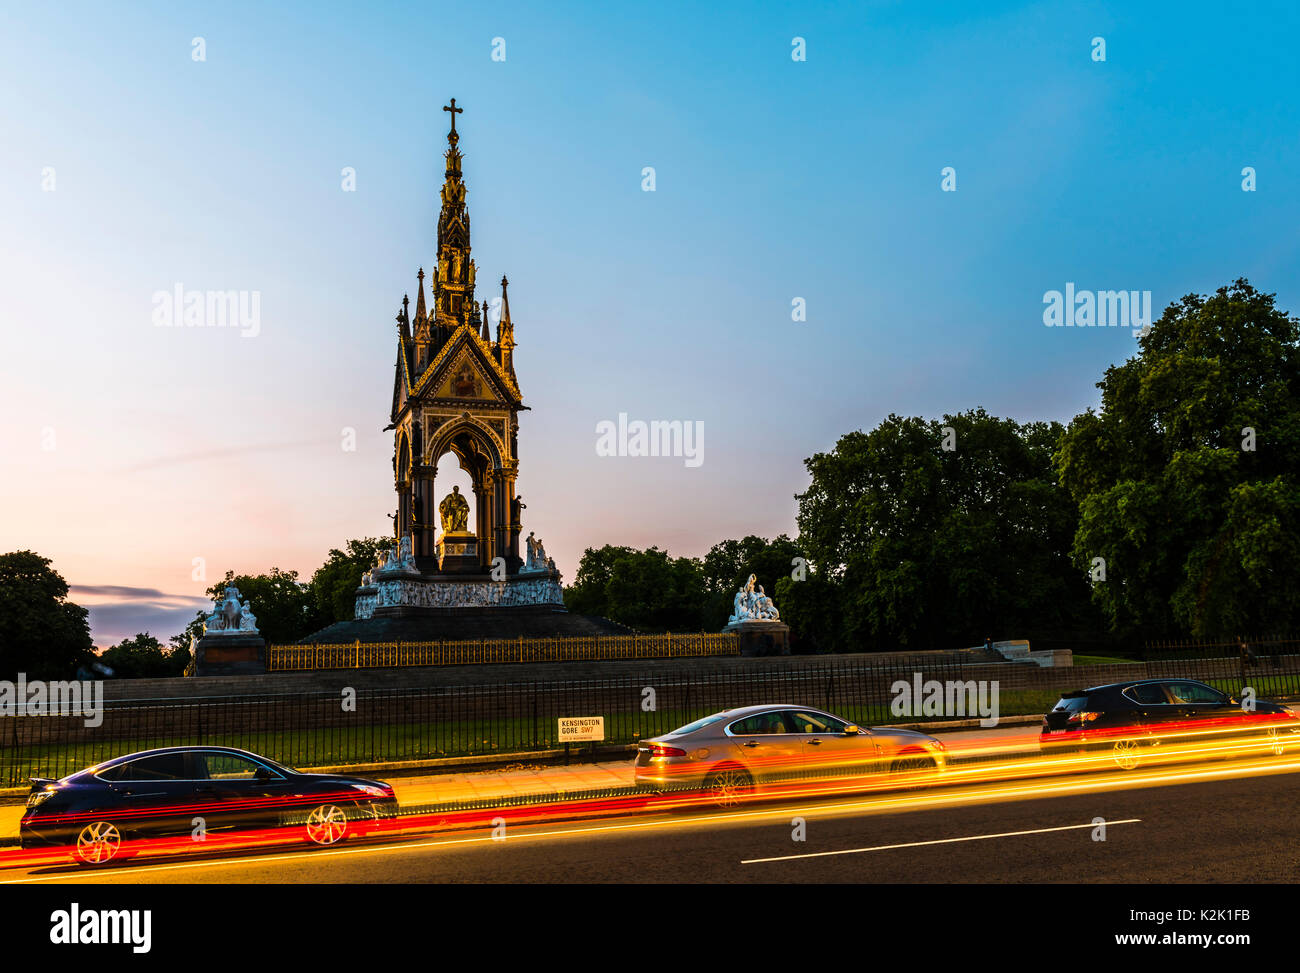 Albert Memorial and lights at dusk, London, UK - Stock Image